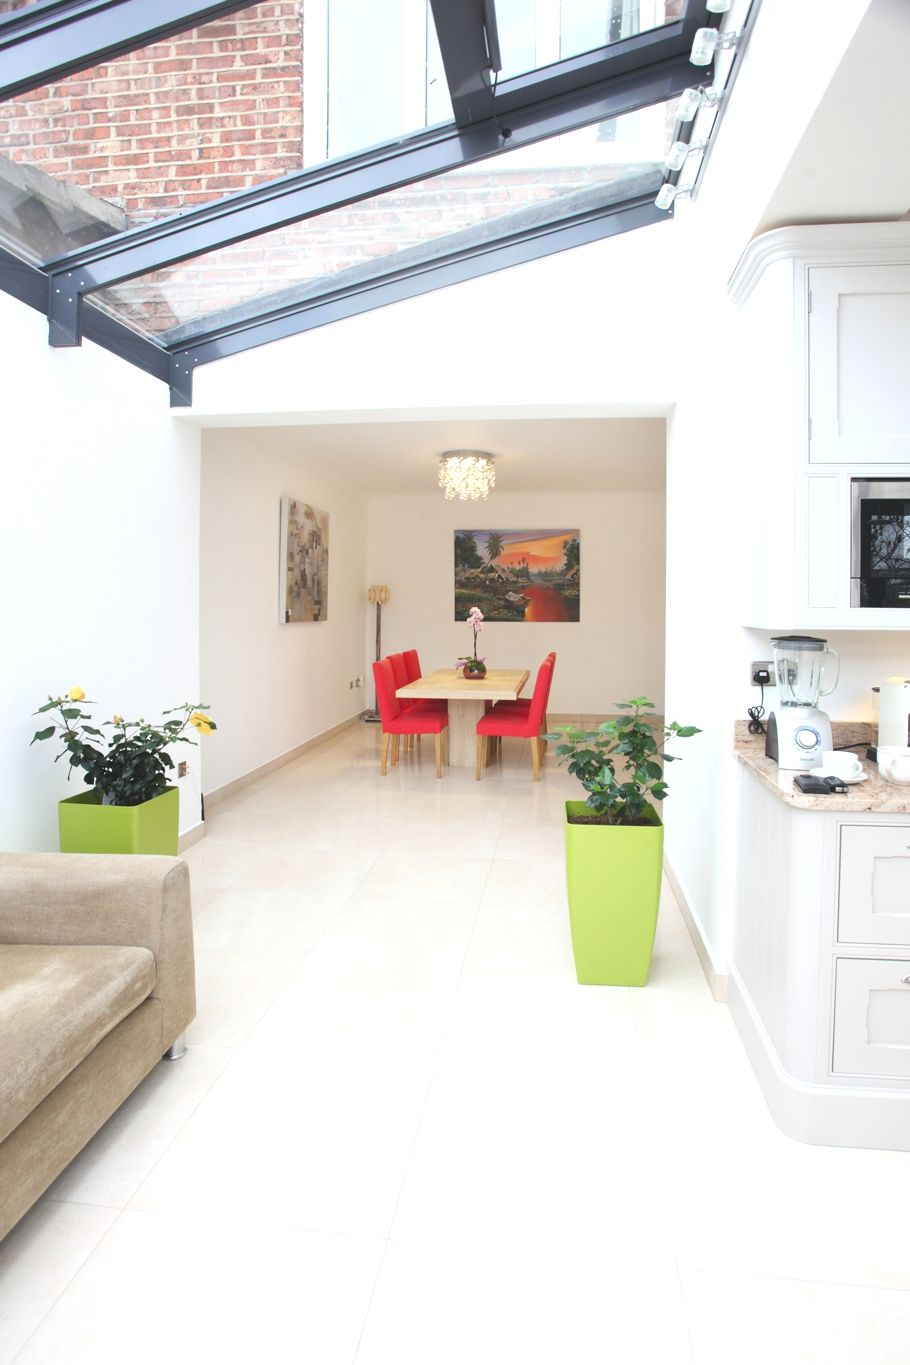 Contemporary Conservatory Ideas: Open Plan Extension for the Home ...